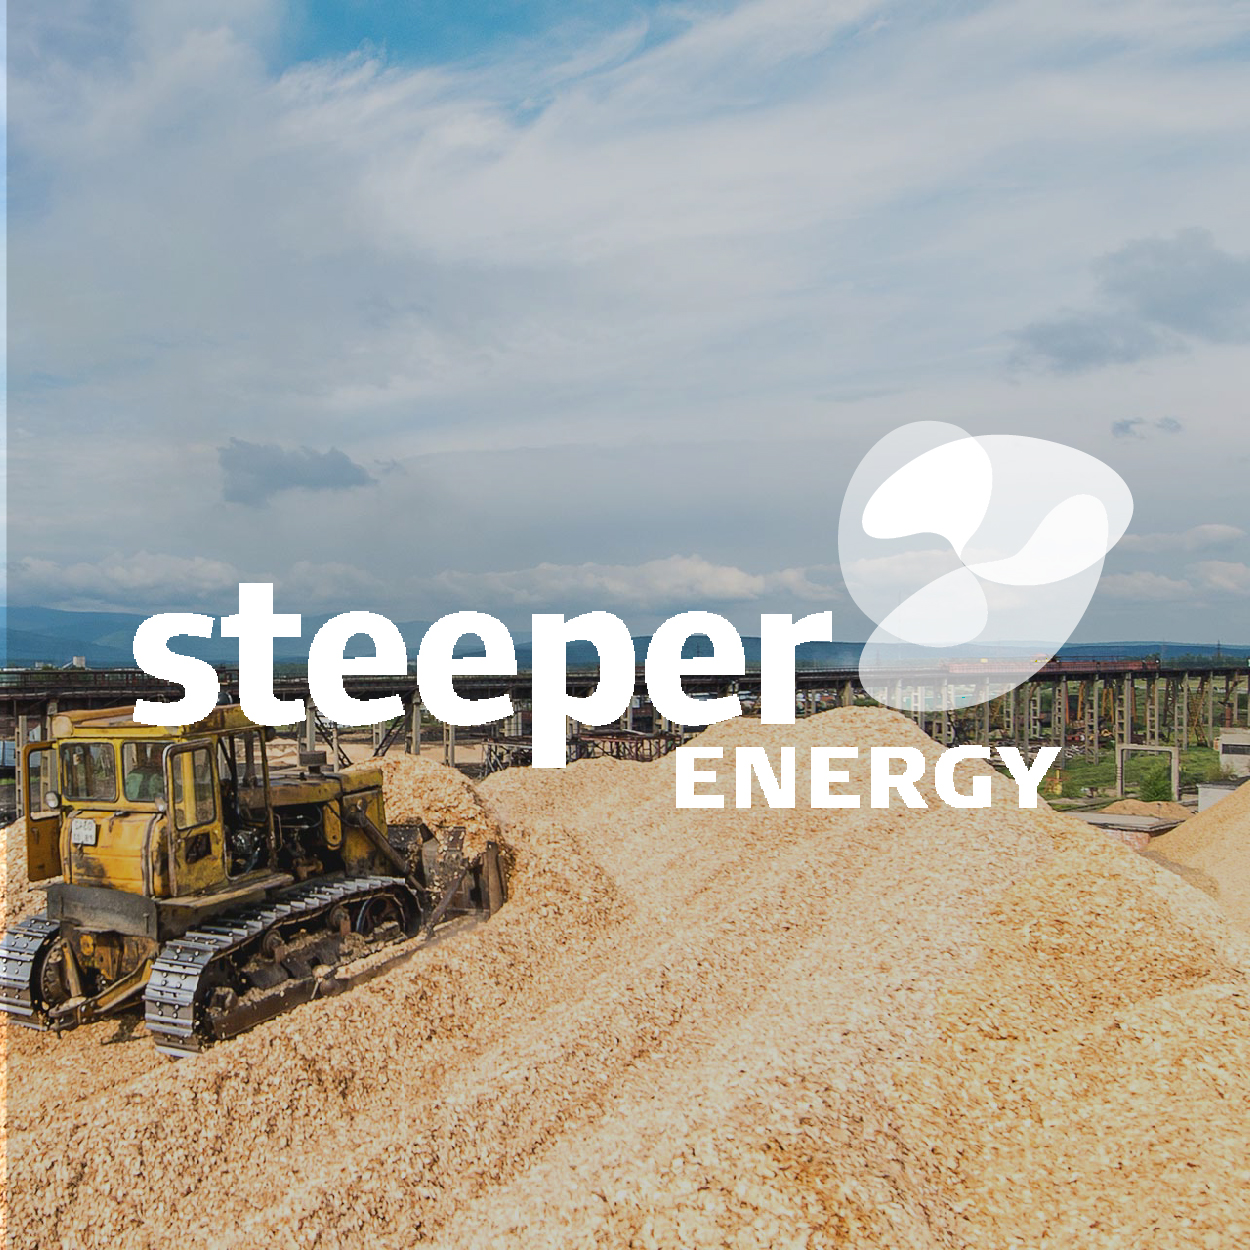 <p><strong>Steeper Energy</strong></p>